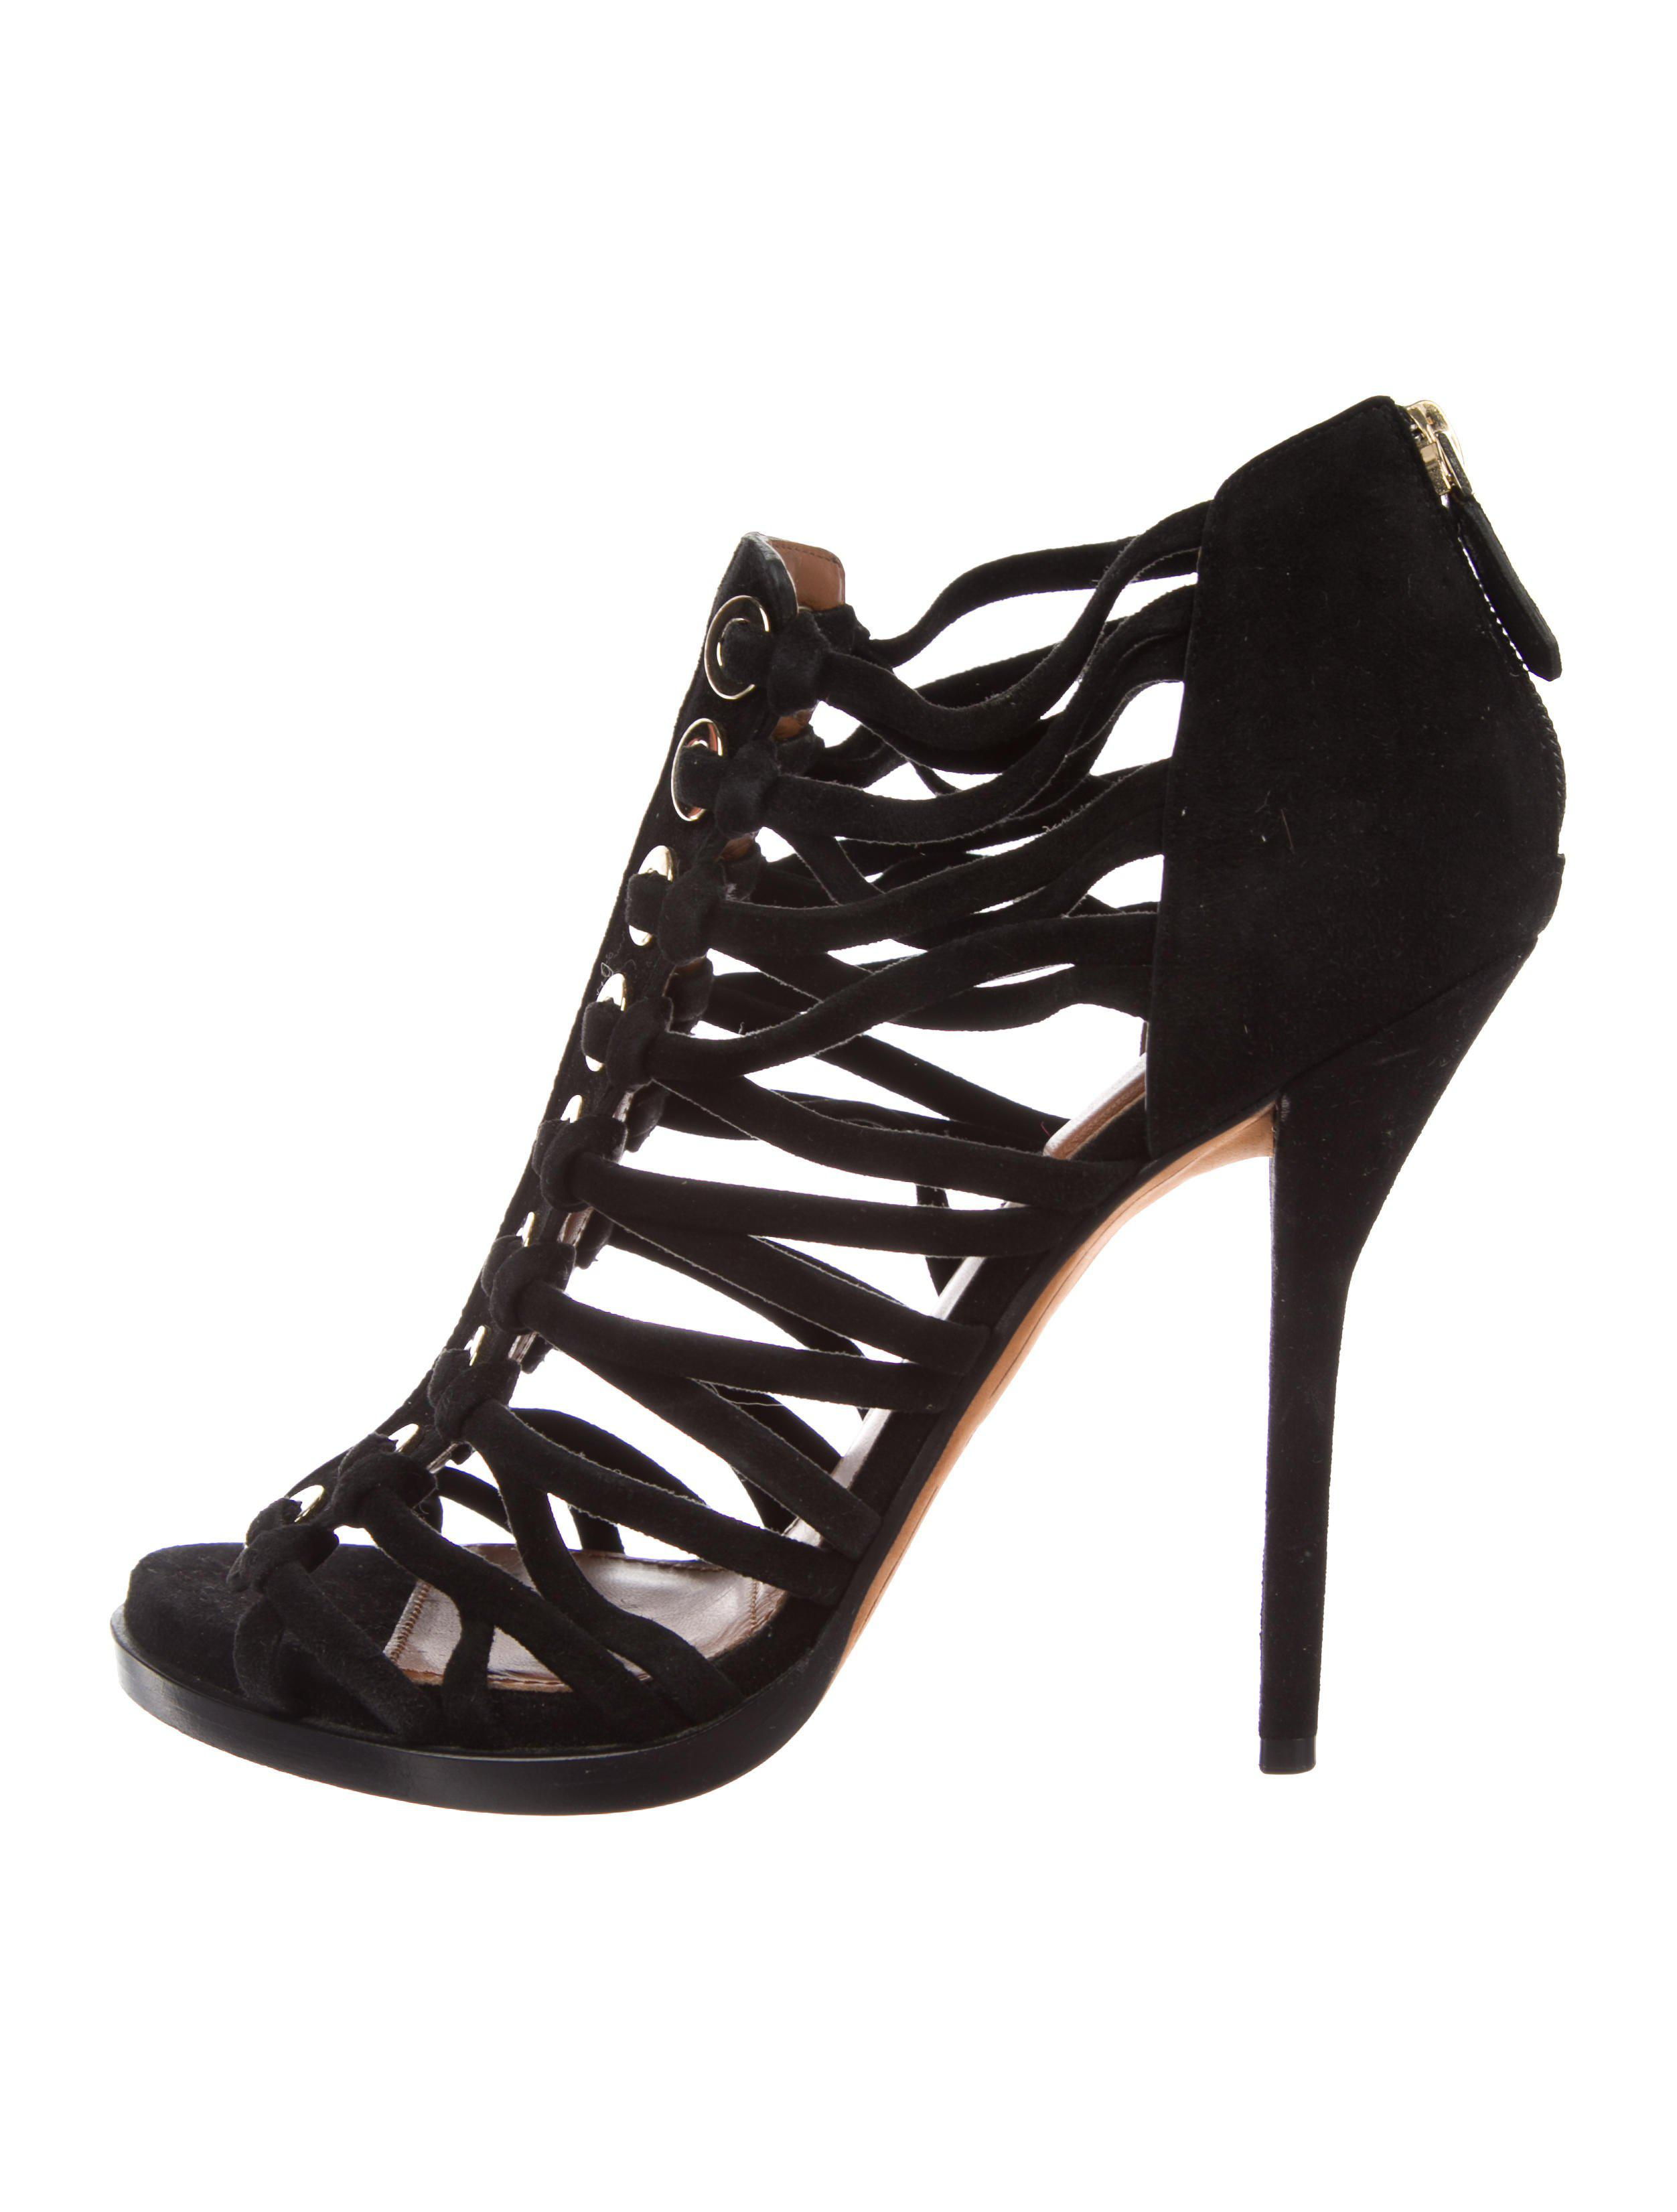 best store to get in China cheap online Givenchy Suede Cage Sandals w/ Tags clearance best sale 100% original buy cheap recommend VCsx3s2